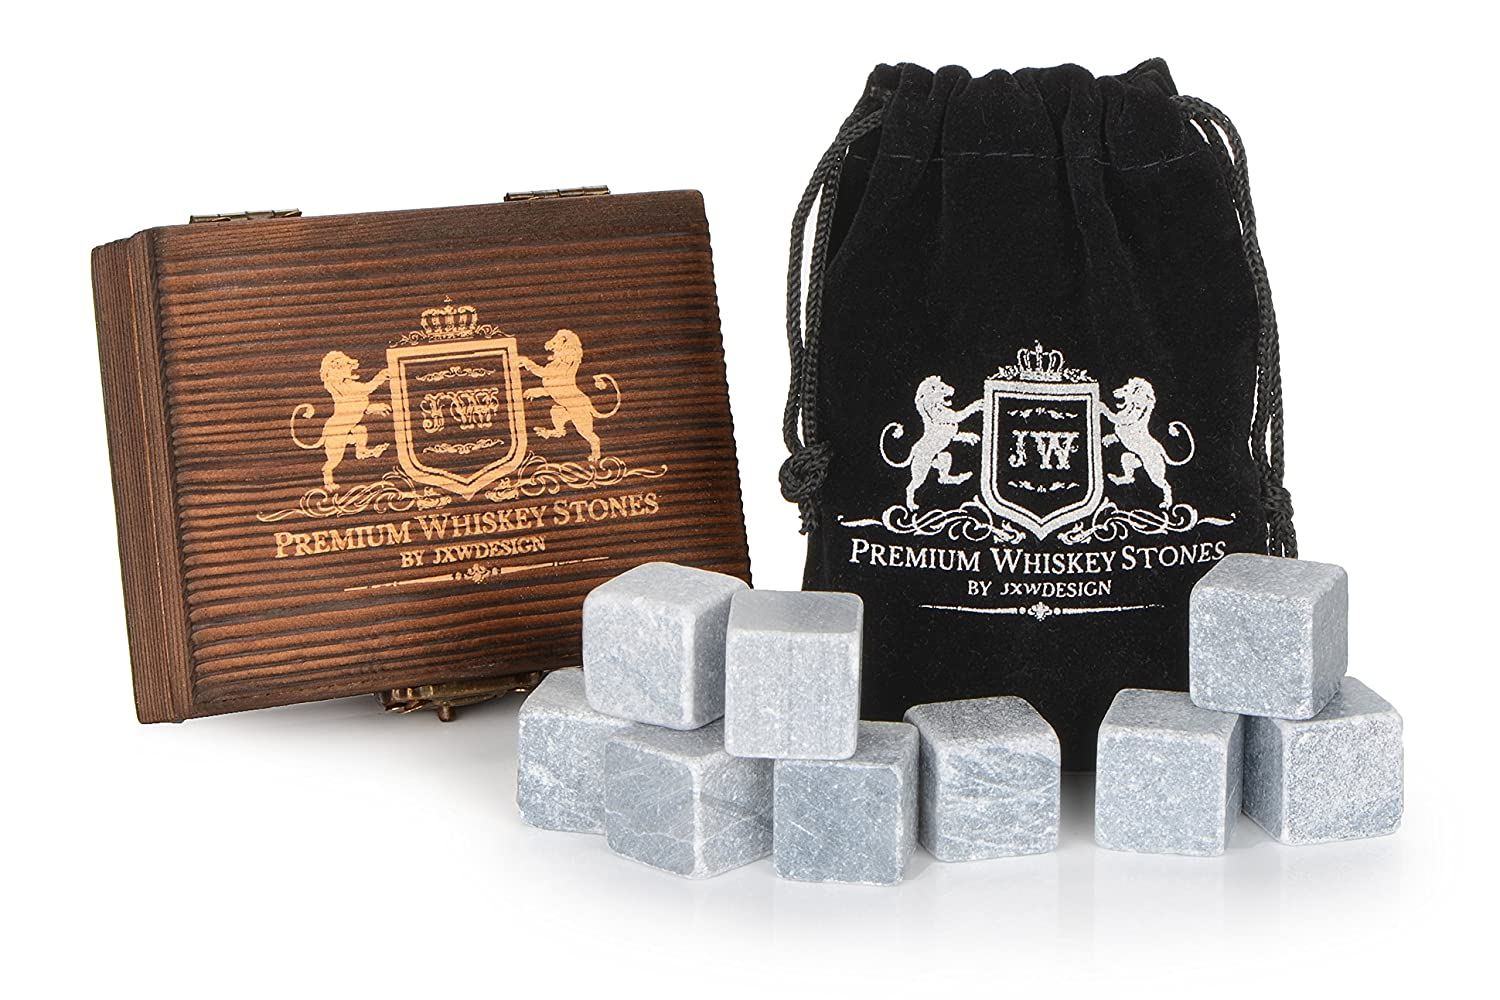 Premium Whiskey Stones ONLY $1...